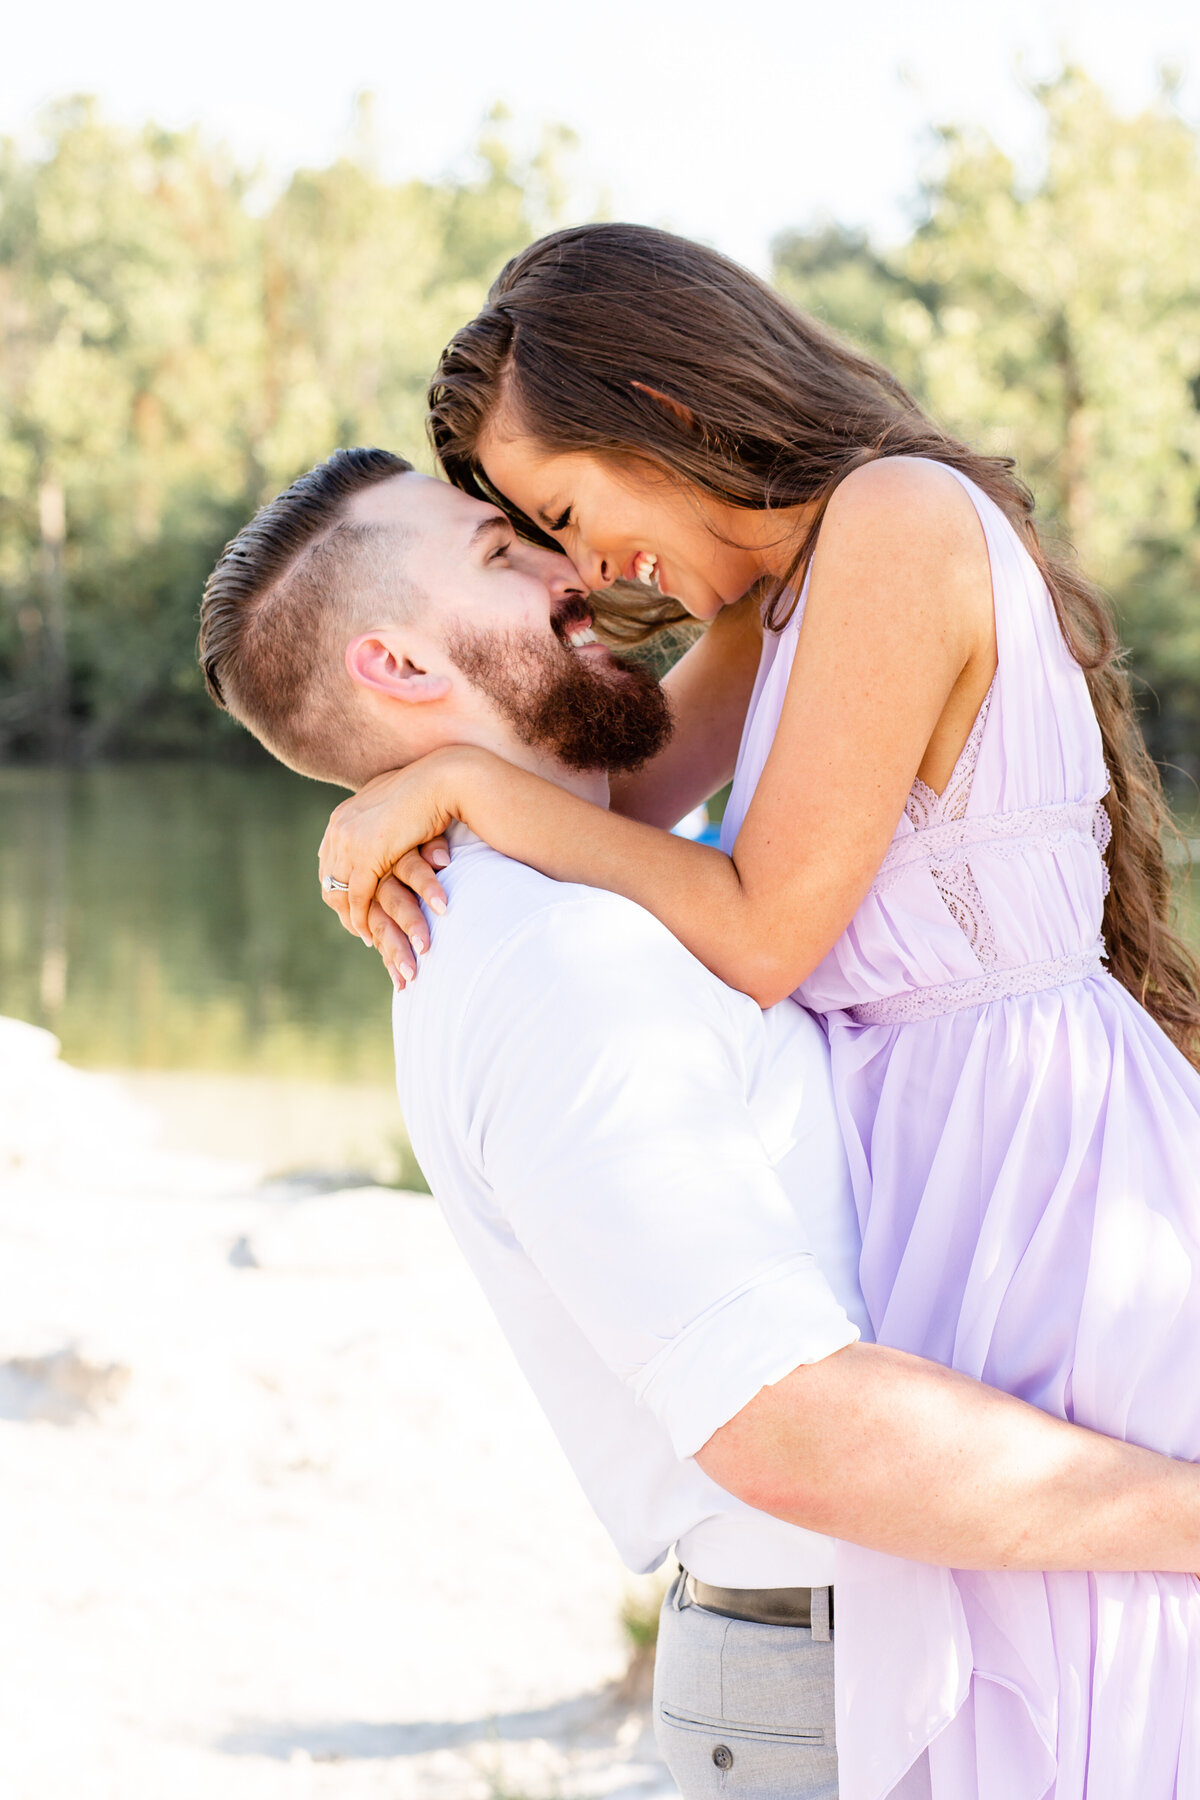 Summer Sunset Romantic Engagement Session in lavender maxi dress guy lifting girl by water at Klondike Park in St. Louis by Amy Britton Photography Photographer in St. Louis